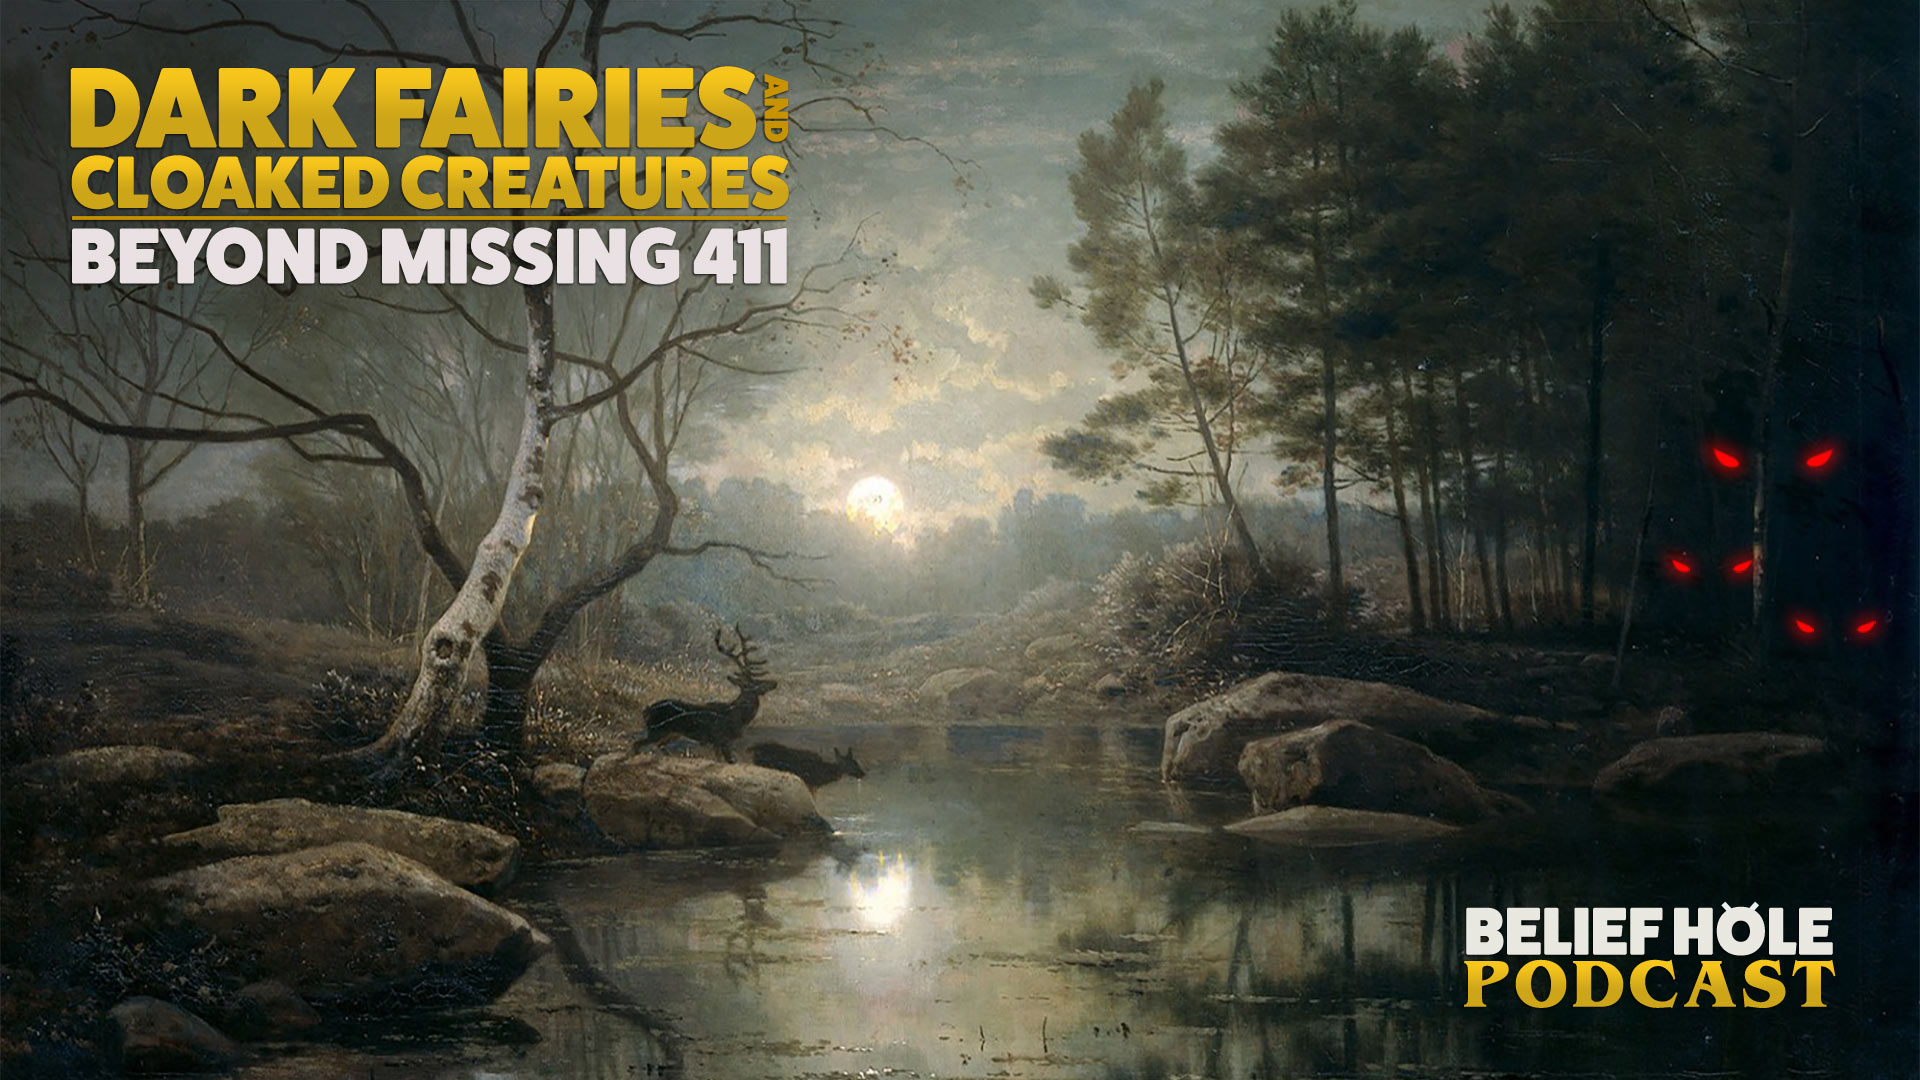 BEYOND MISSING 411 - DARK FARIES - cloaked entities - PARANORMAL PODCAST - BELIEF HOLE podcast